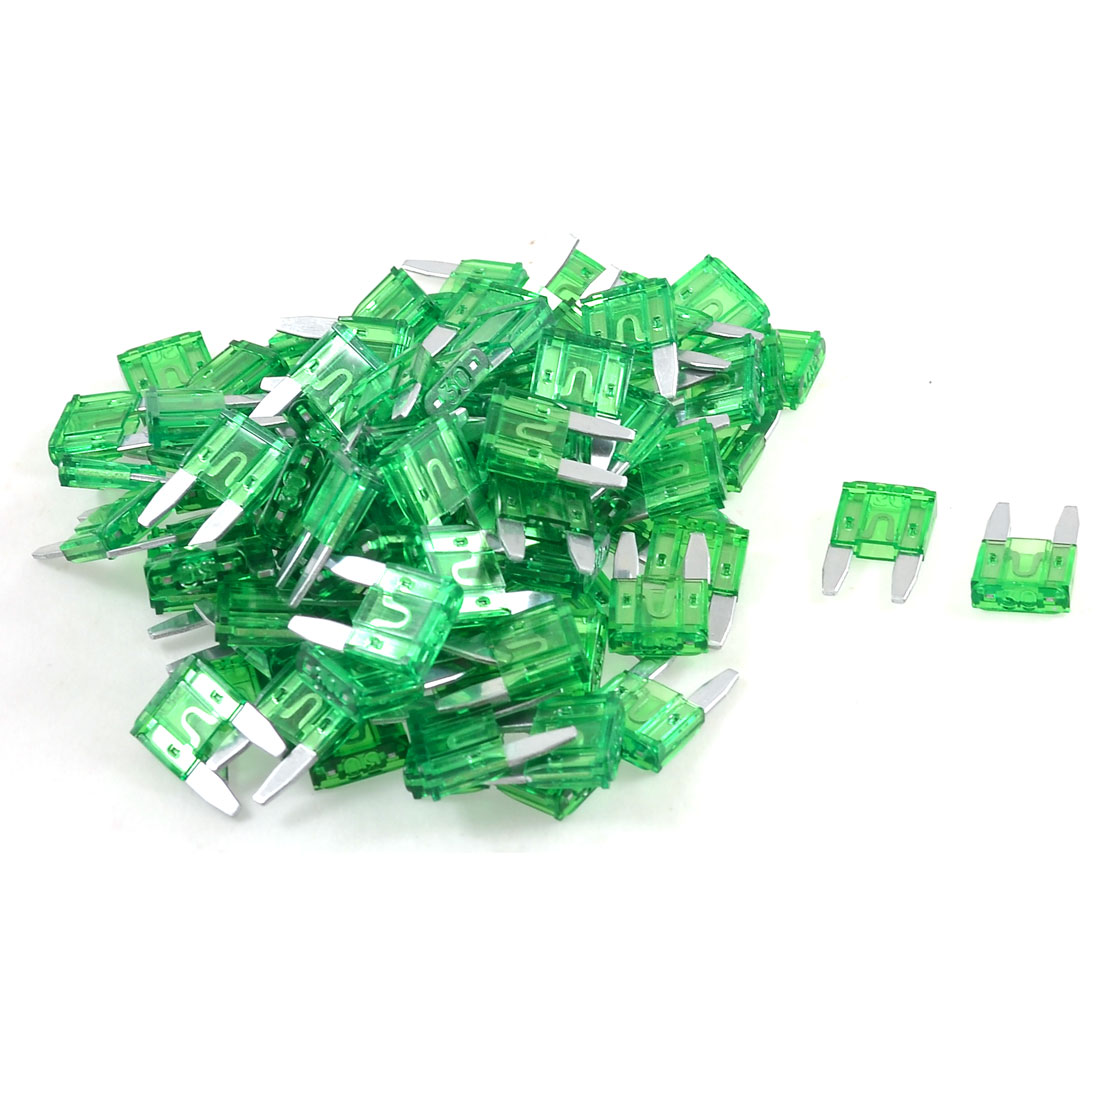 Green 30A Mini Blade Fuses Set for Vehicle Car Auto 100 Pcs